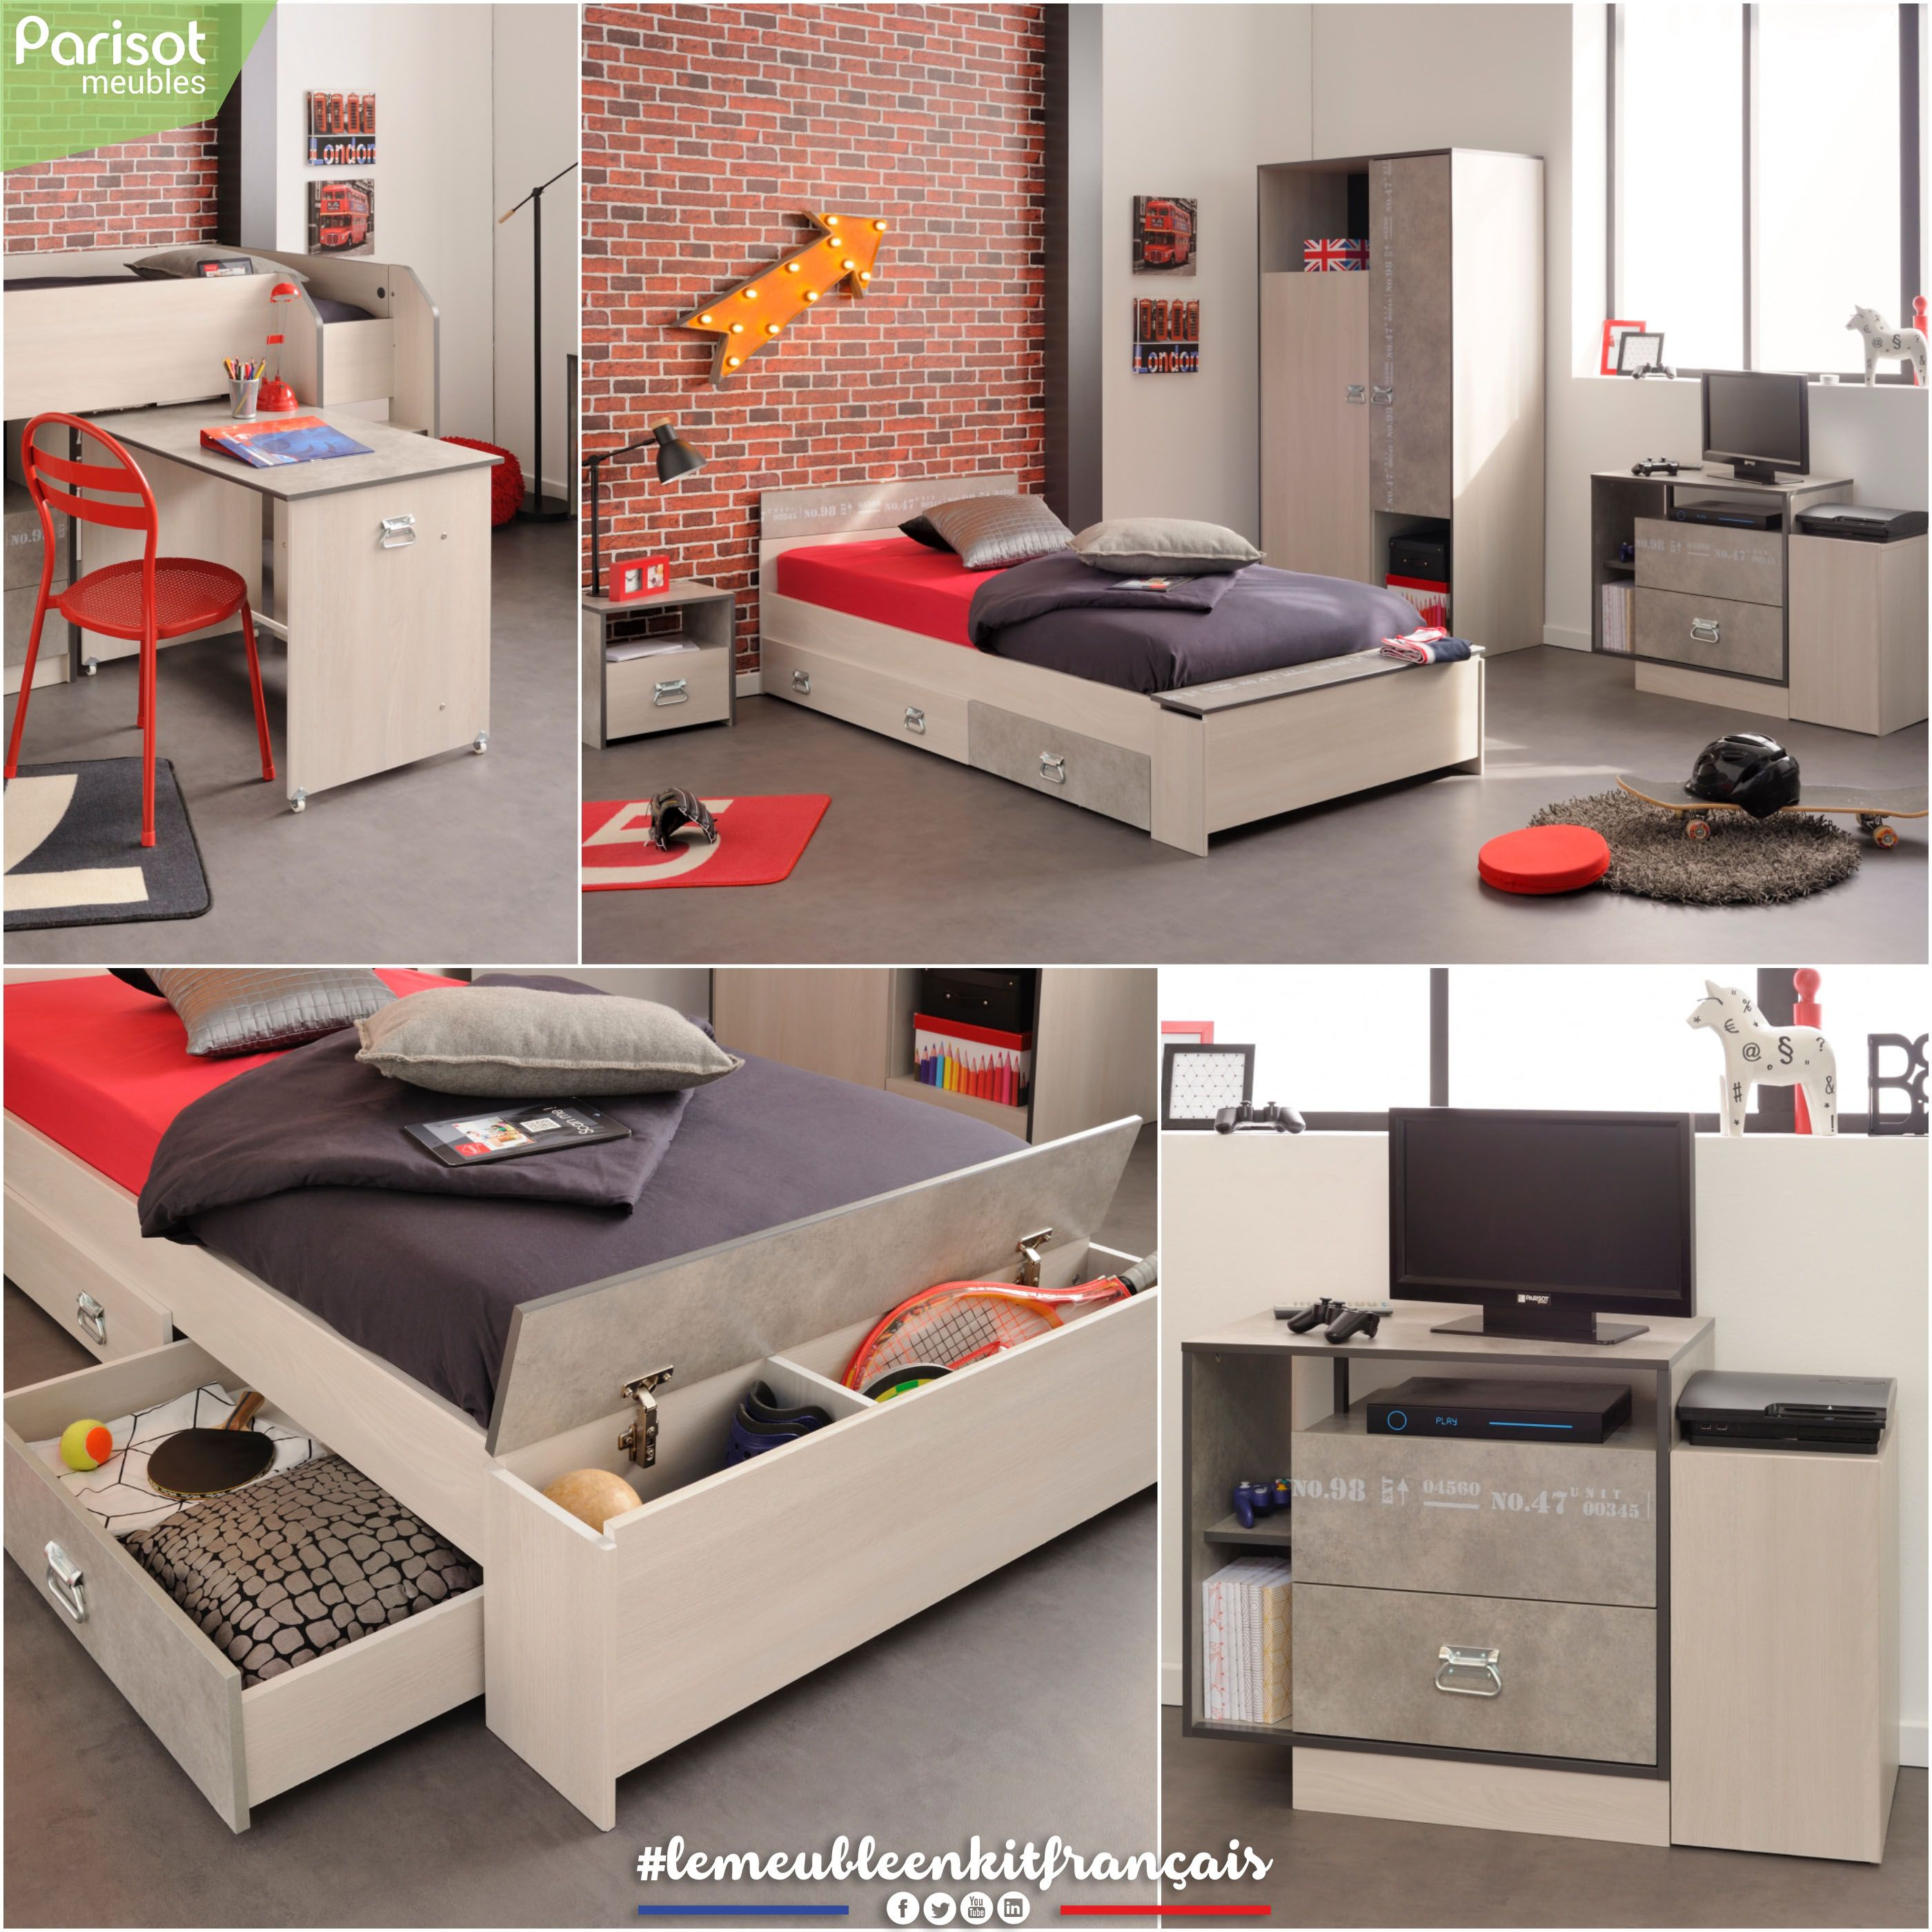 Hipster By Parisot Meubles A Functional And Trendy Bedroom With An Industrial And Hipster Style The Favourite Boys Range Lemeubleenkitfrancais Muebles